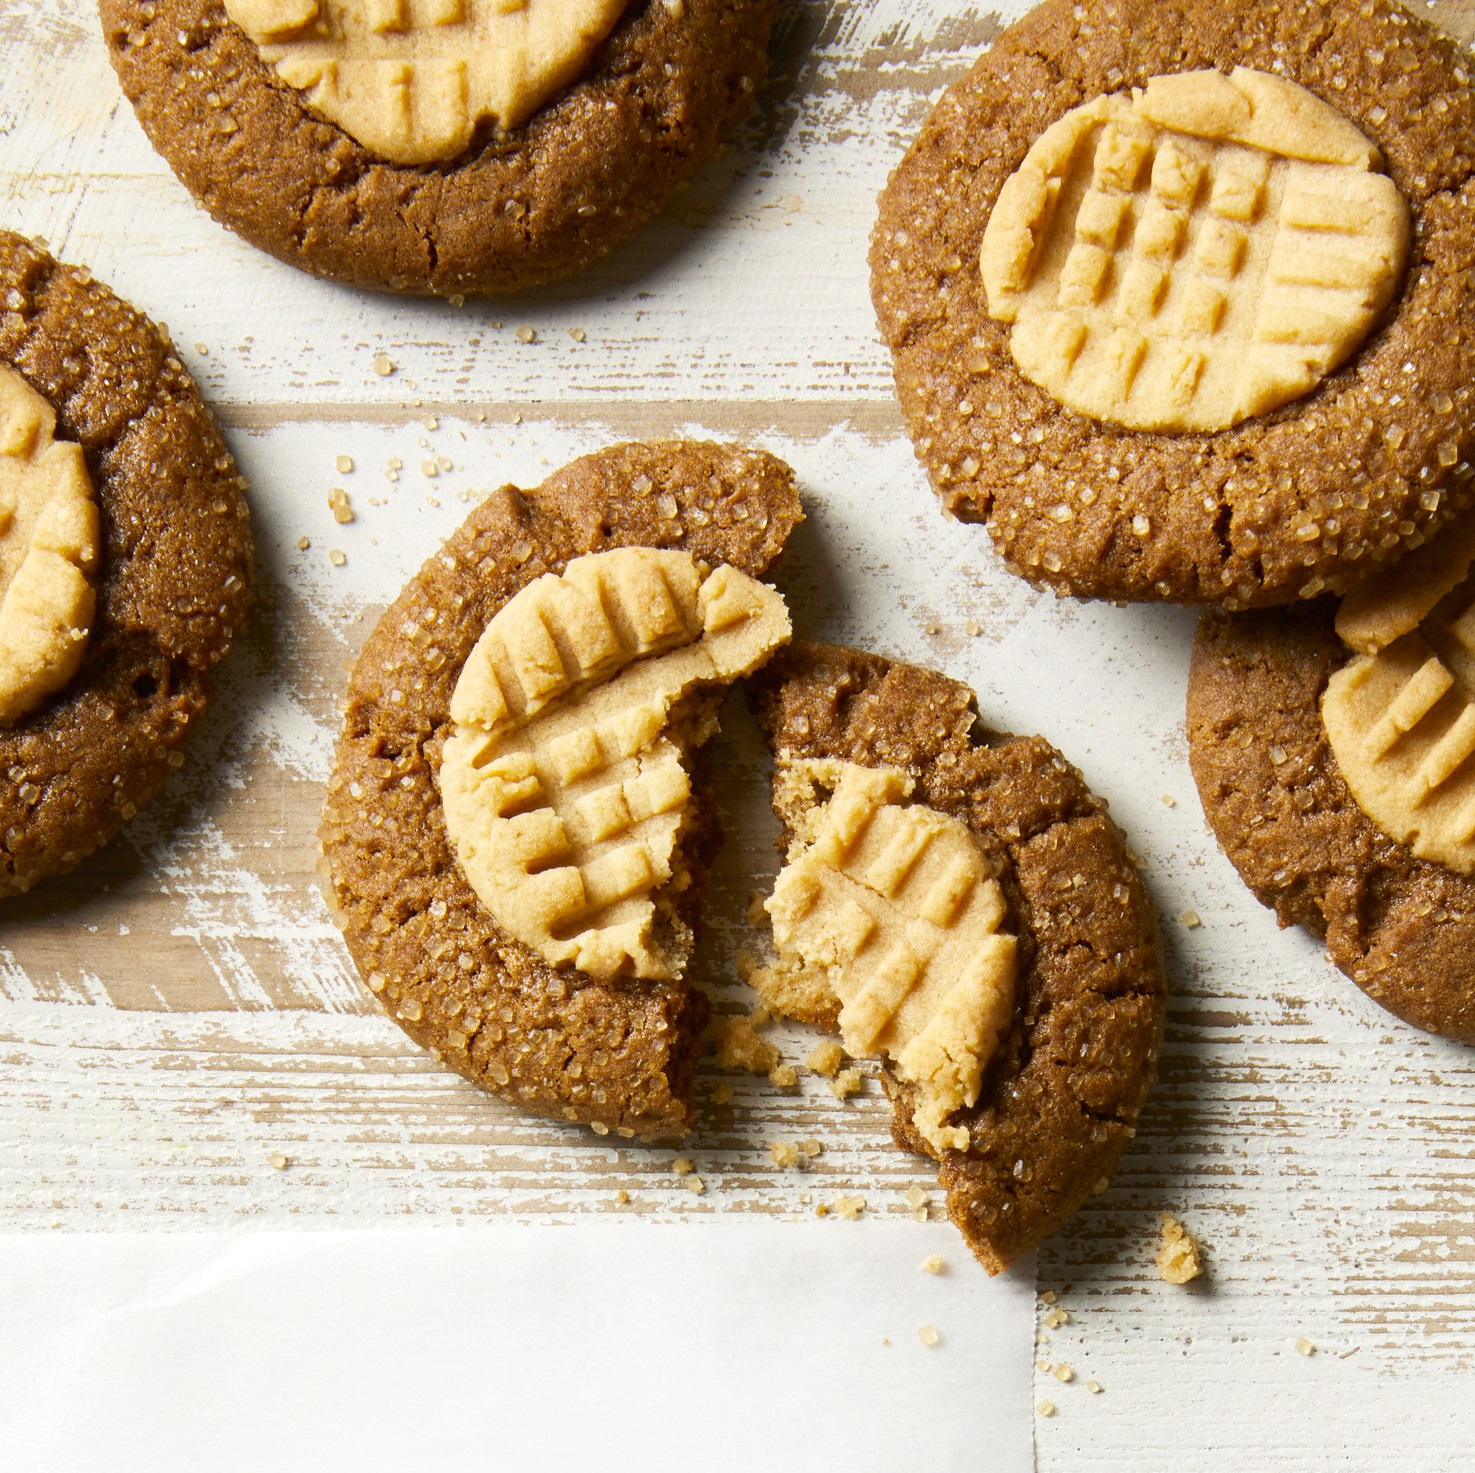 Peanut-Ginger Double-Deckers